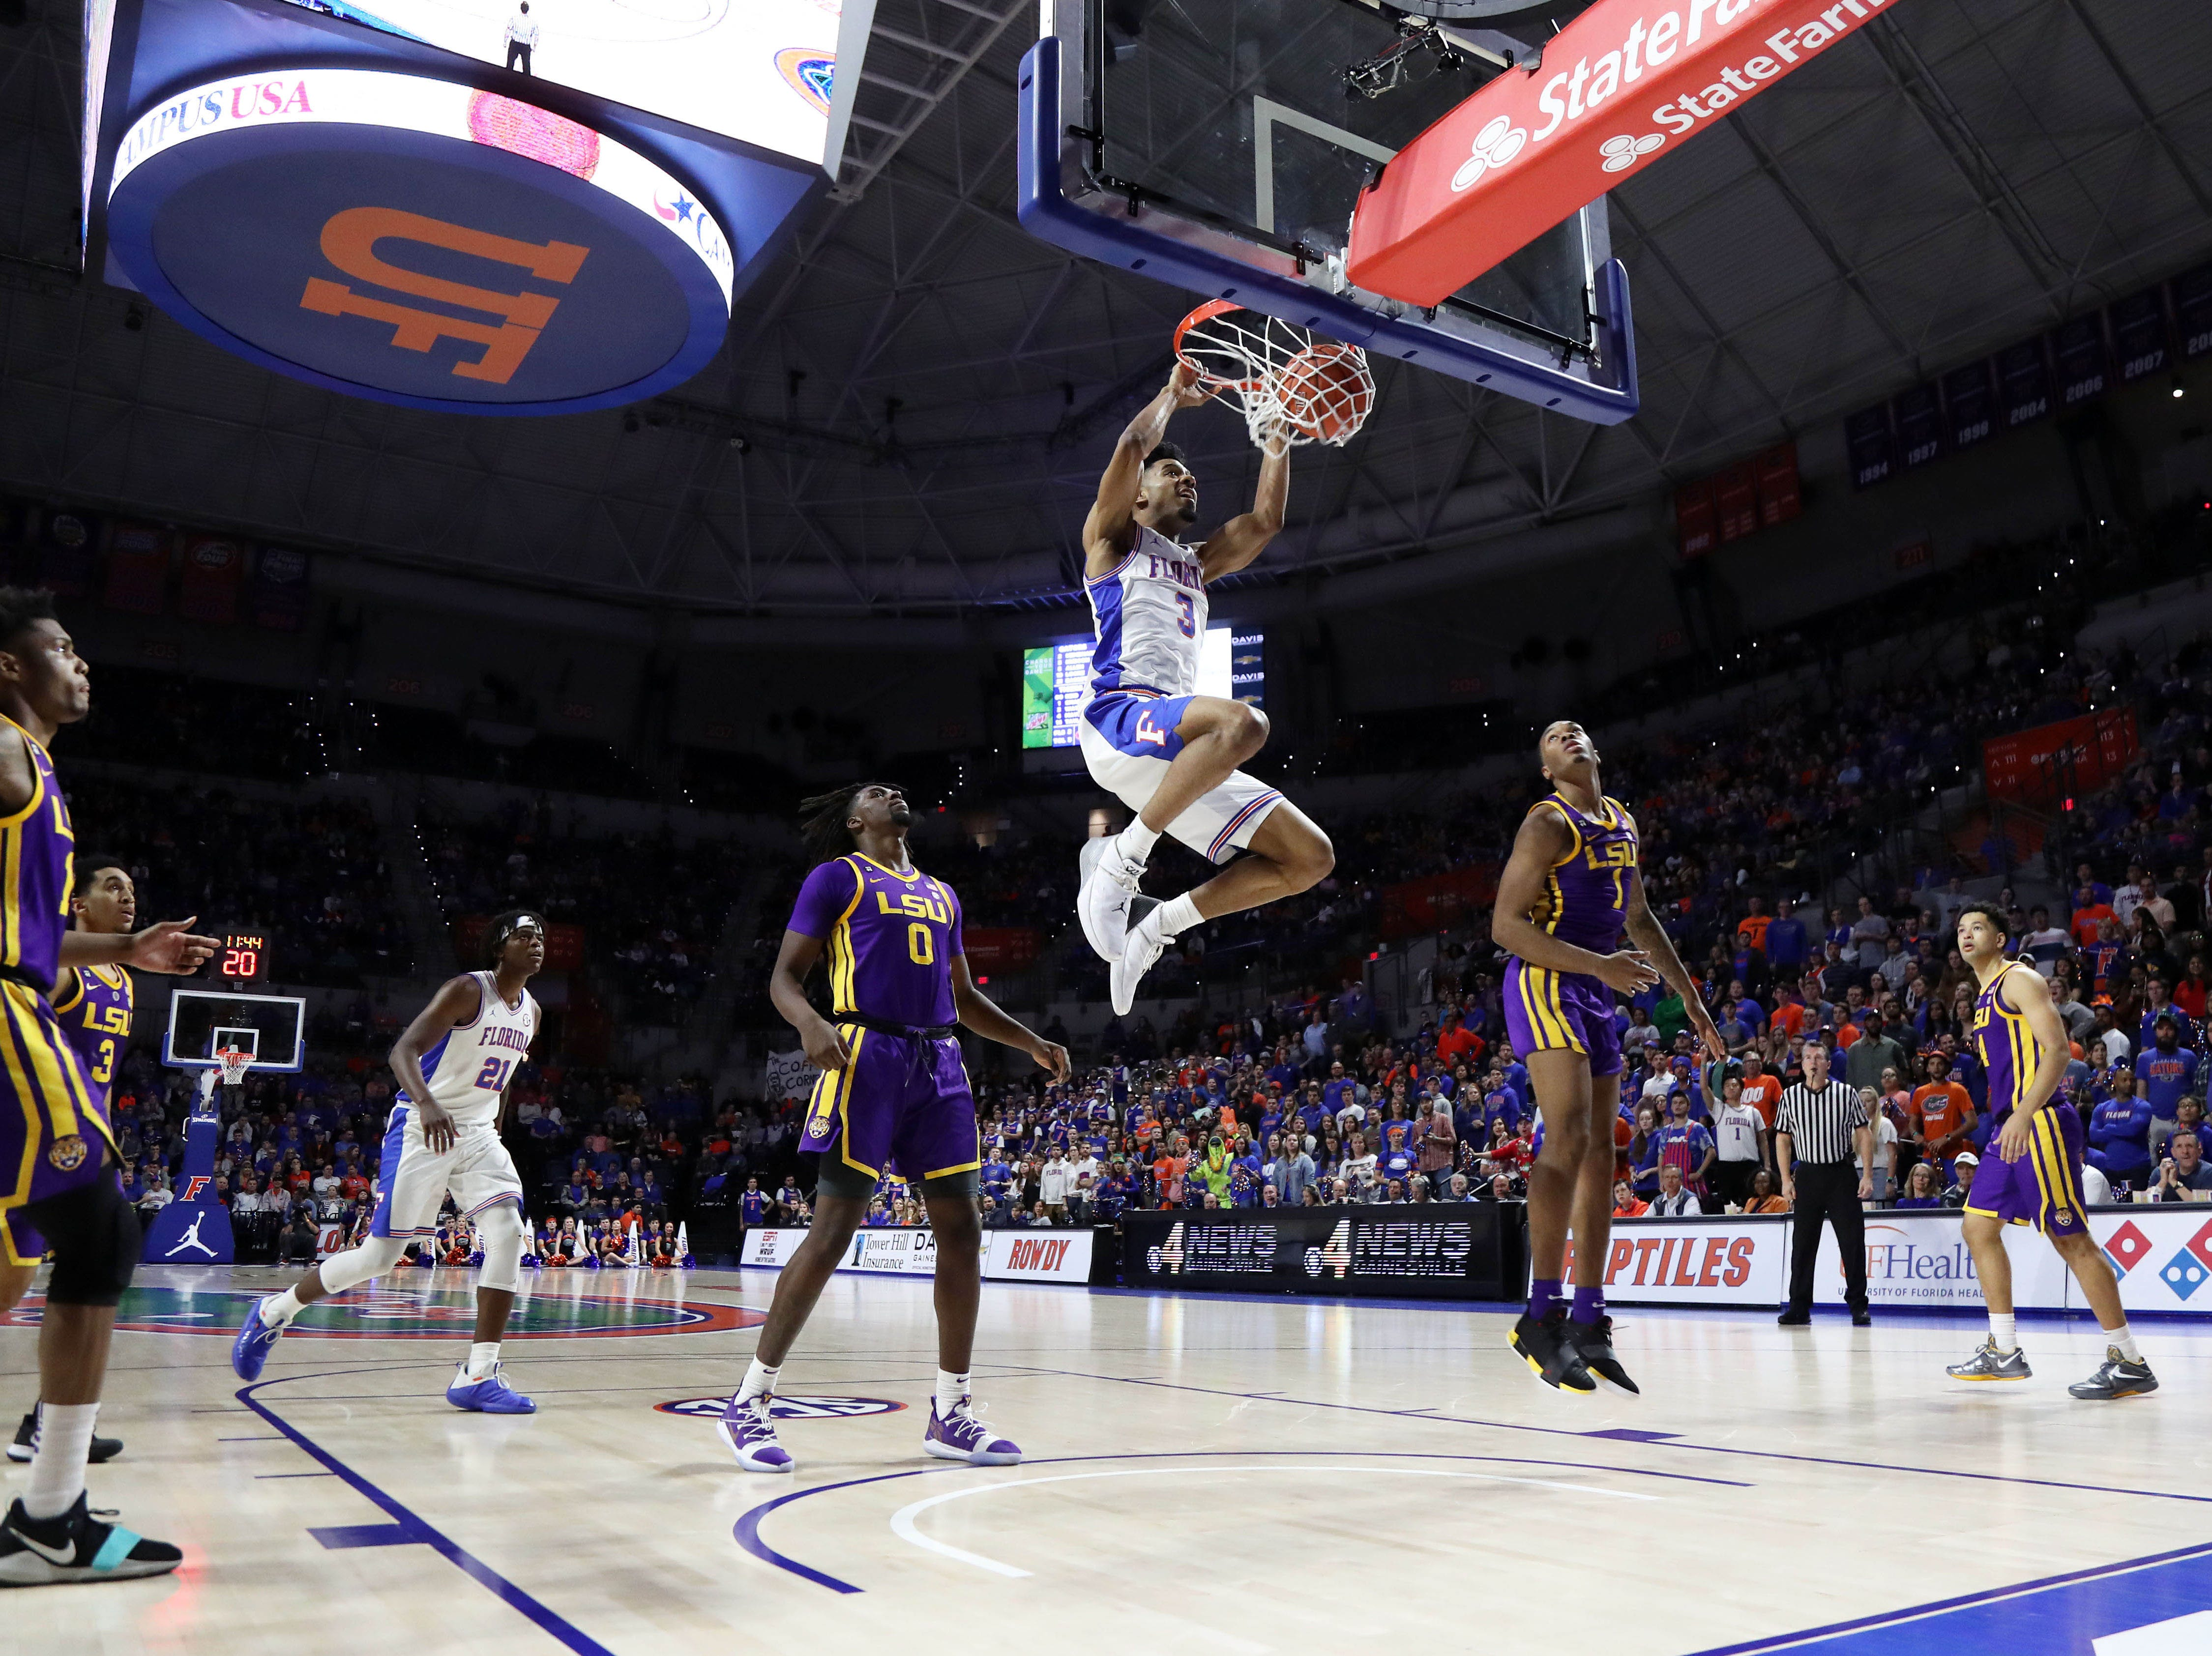 Mar 6, 2019; Gainesville, FL, USA;Florida Gators guard Jalen Hudson (3) dunks the ball against the LSU Tigers  during the second half at Exactech Arena. Mandatory Credit: Kim Klement-USA TODAY Sports